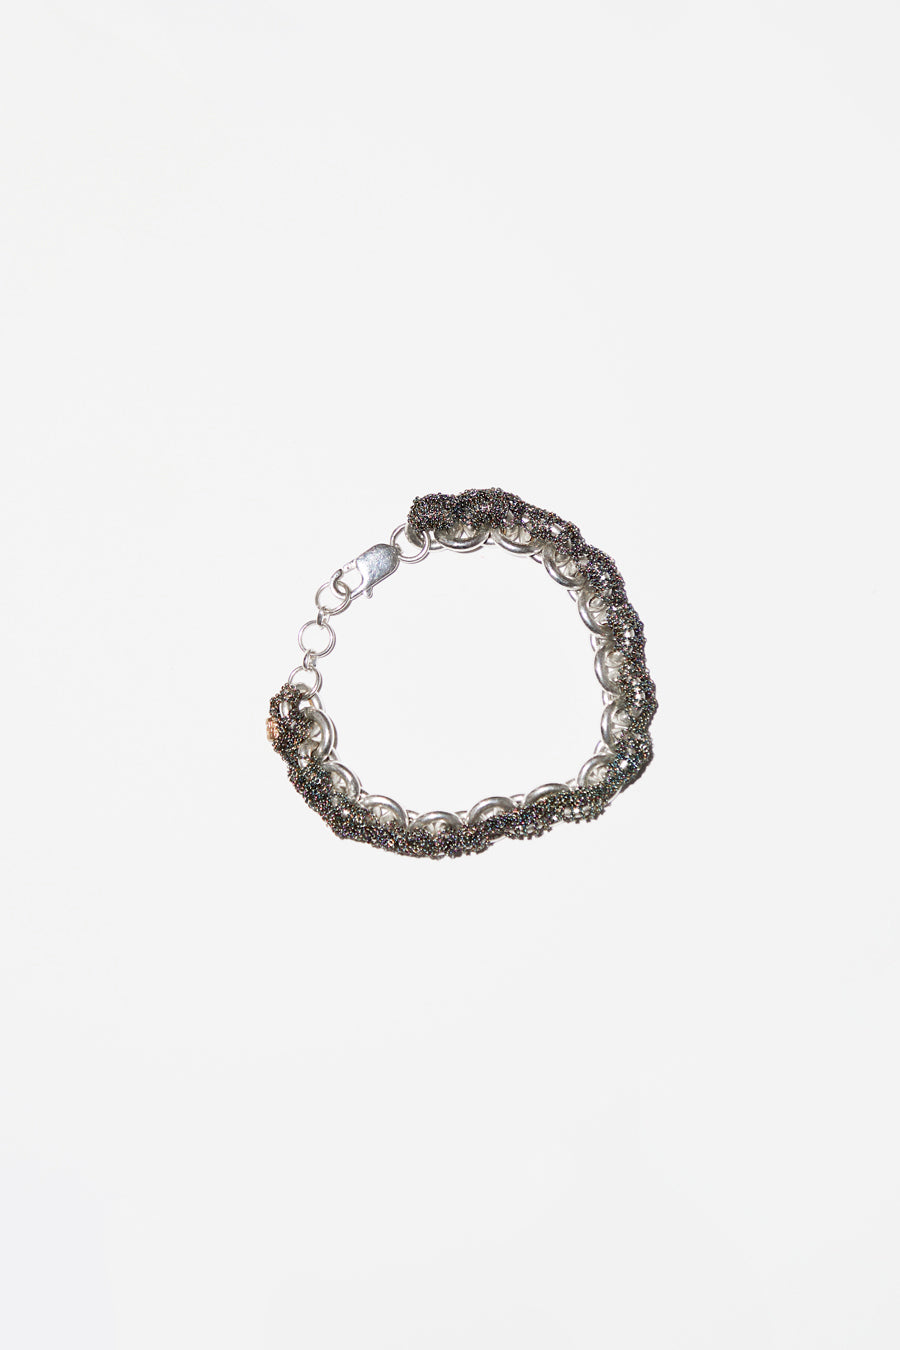 Arielle de Pinto Connection Bracelet in Anti-Peach with Silver Links